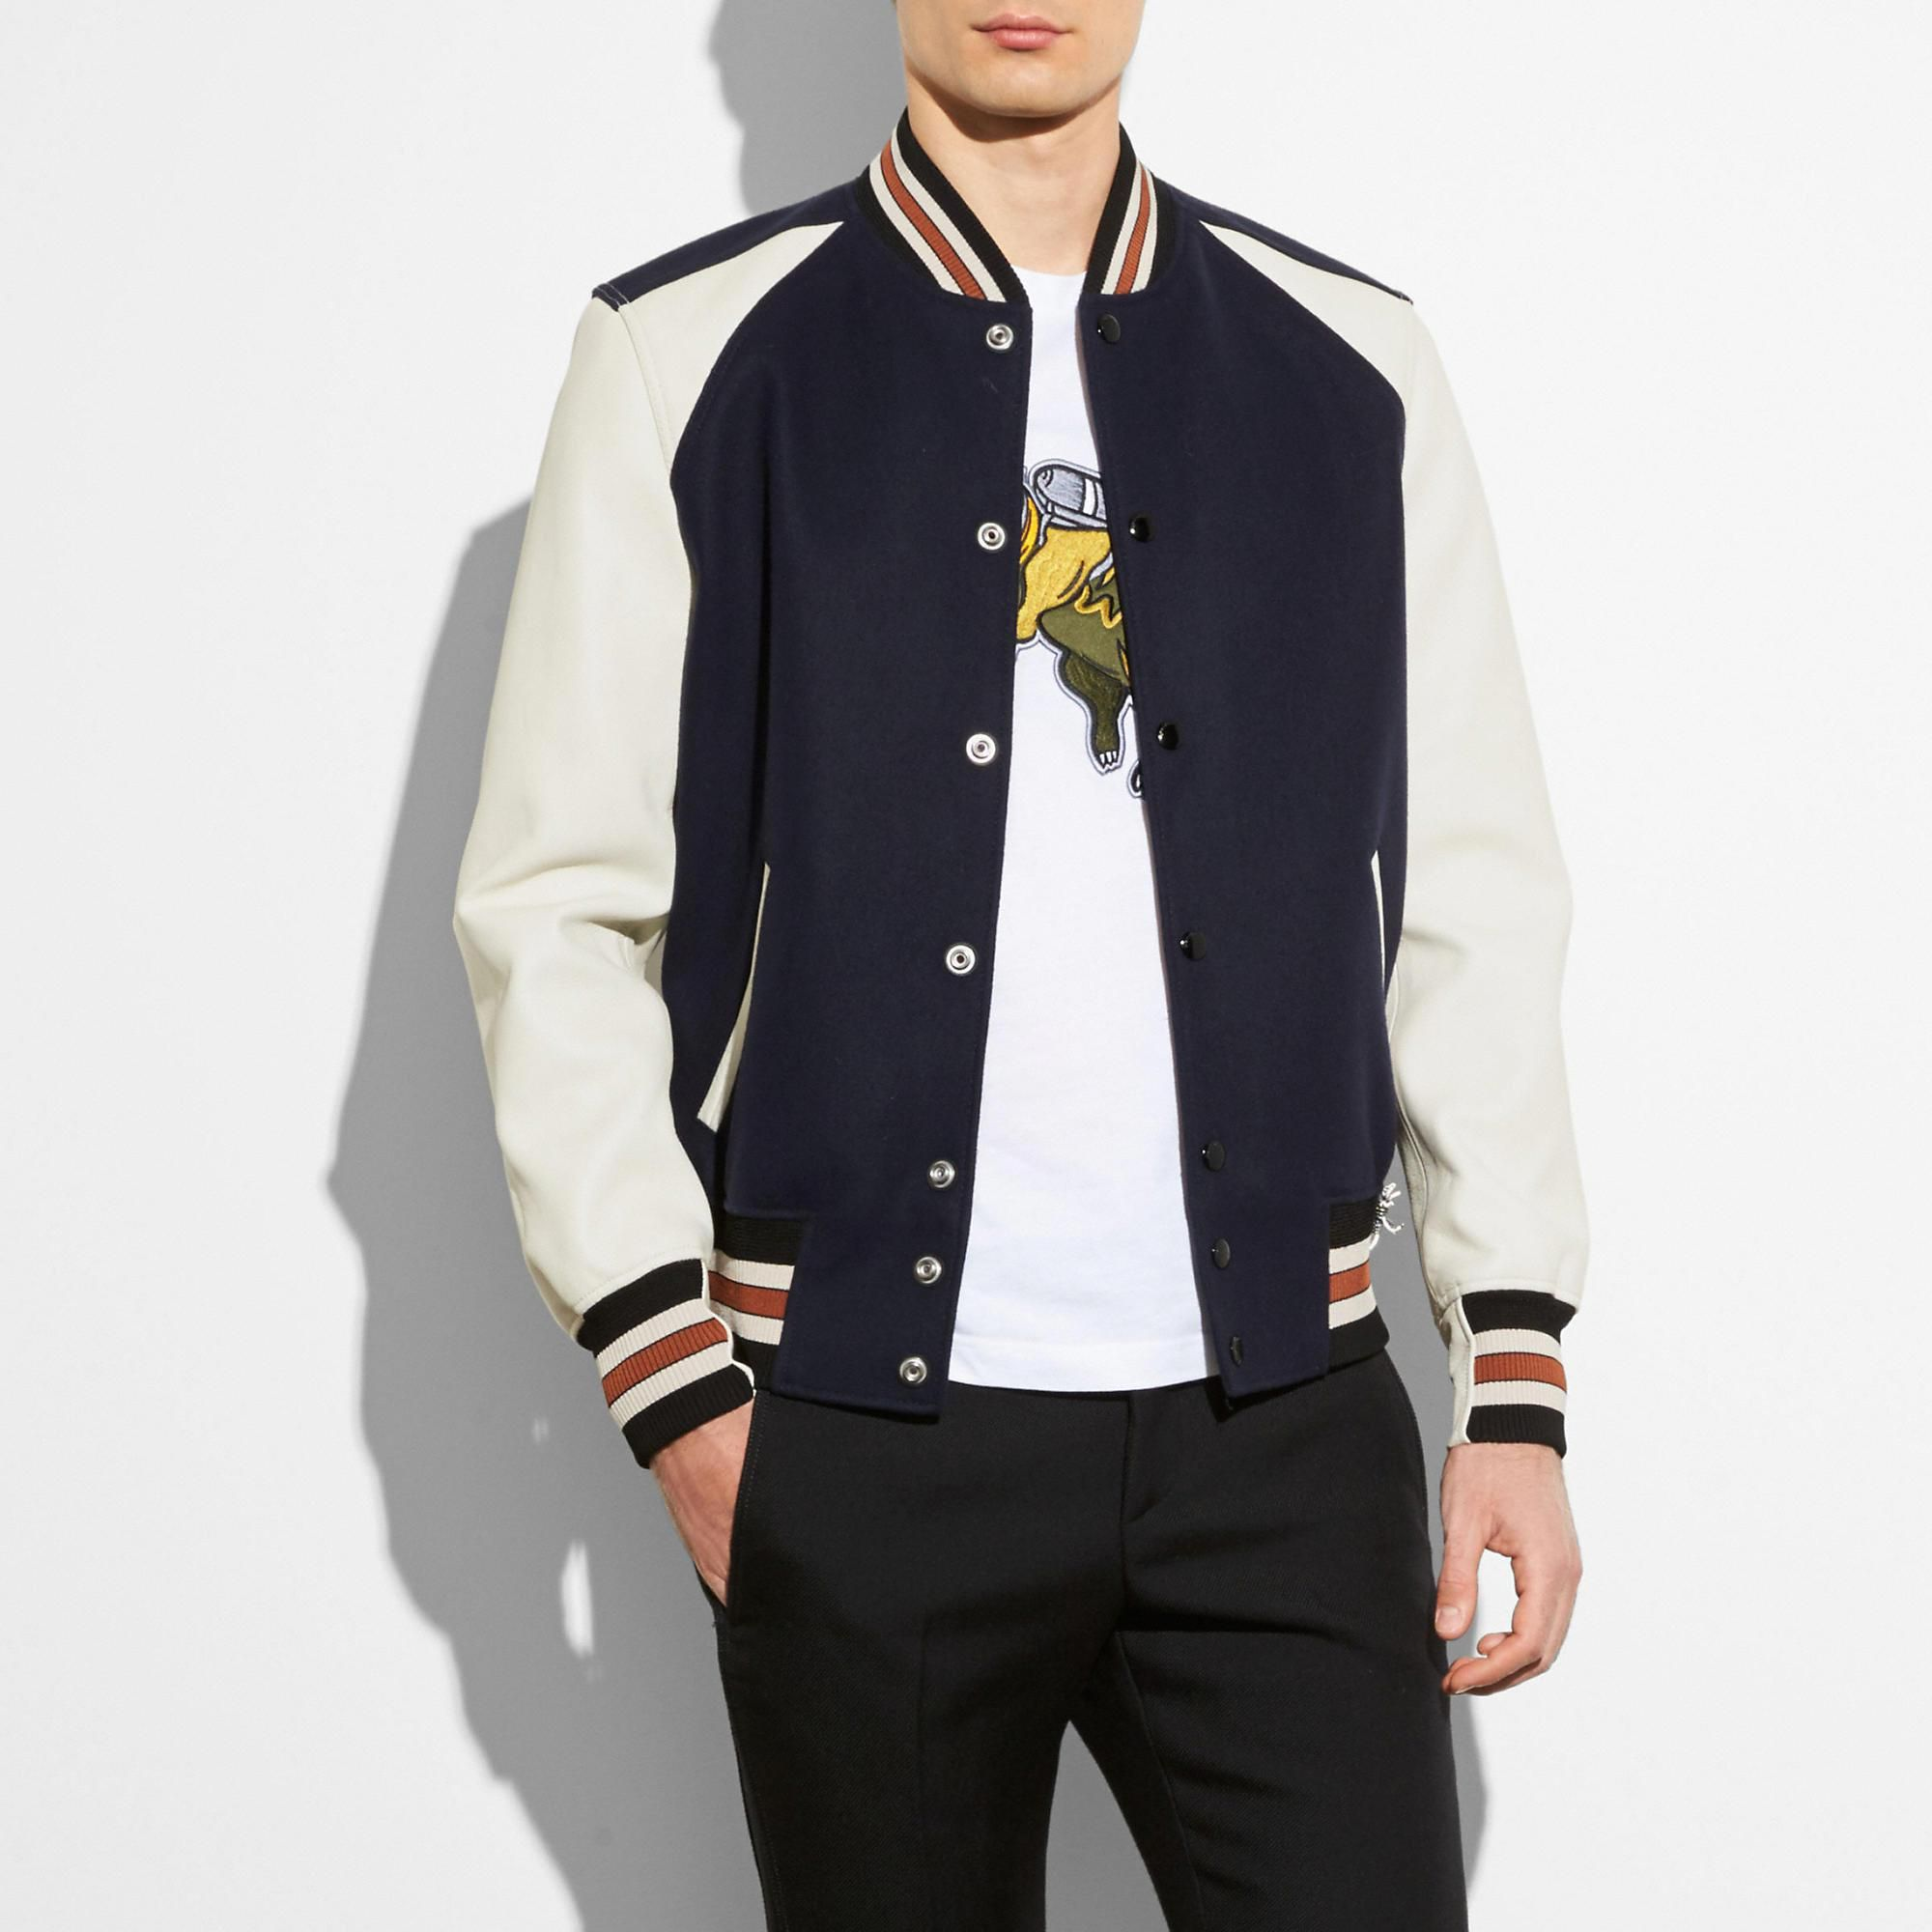 COACH Men's Varsity Jacket mensworkfashion Varsity